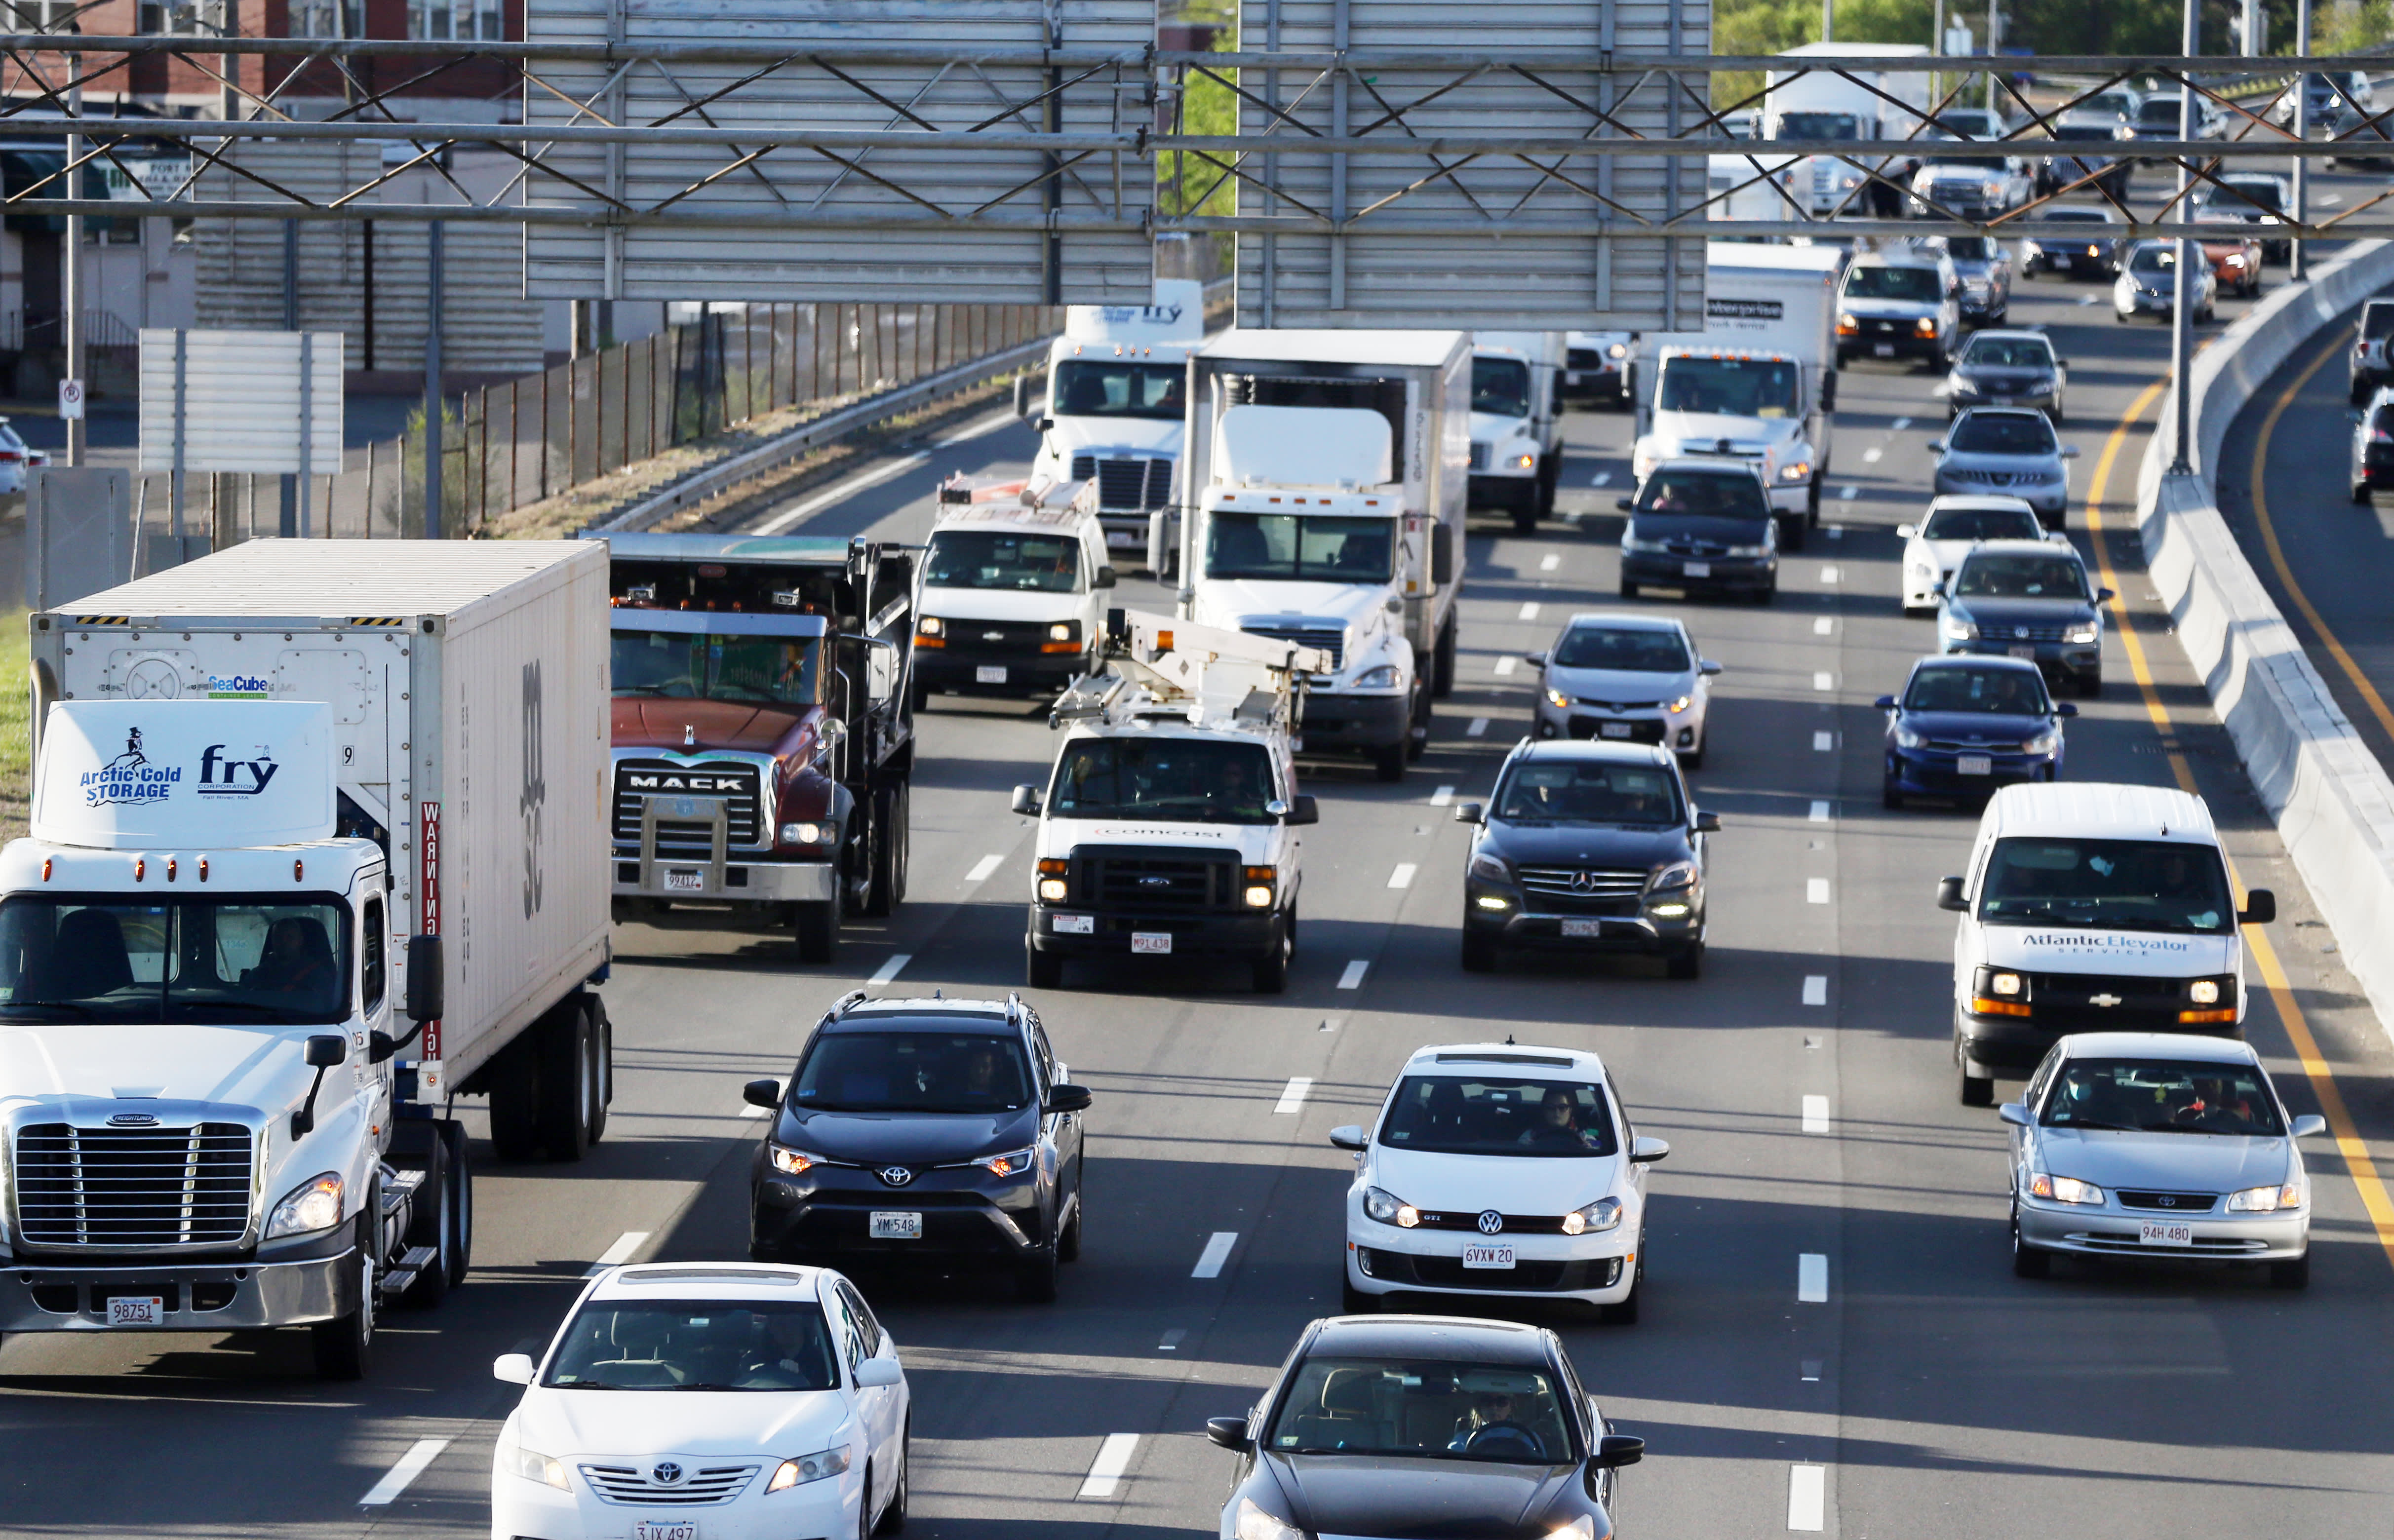 CDC guidance against mass transit sparks fears of congestion, emissions